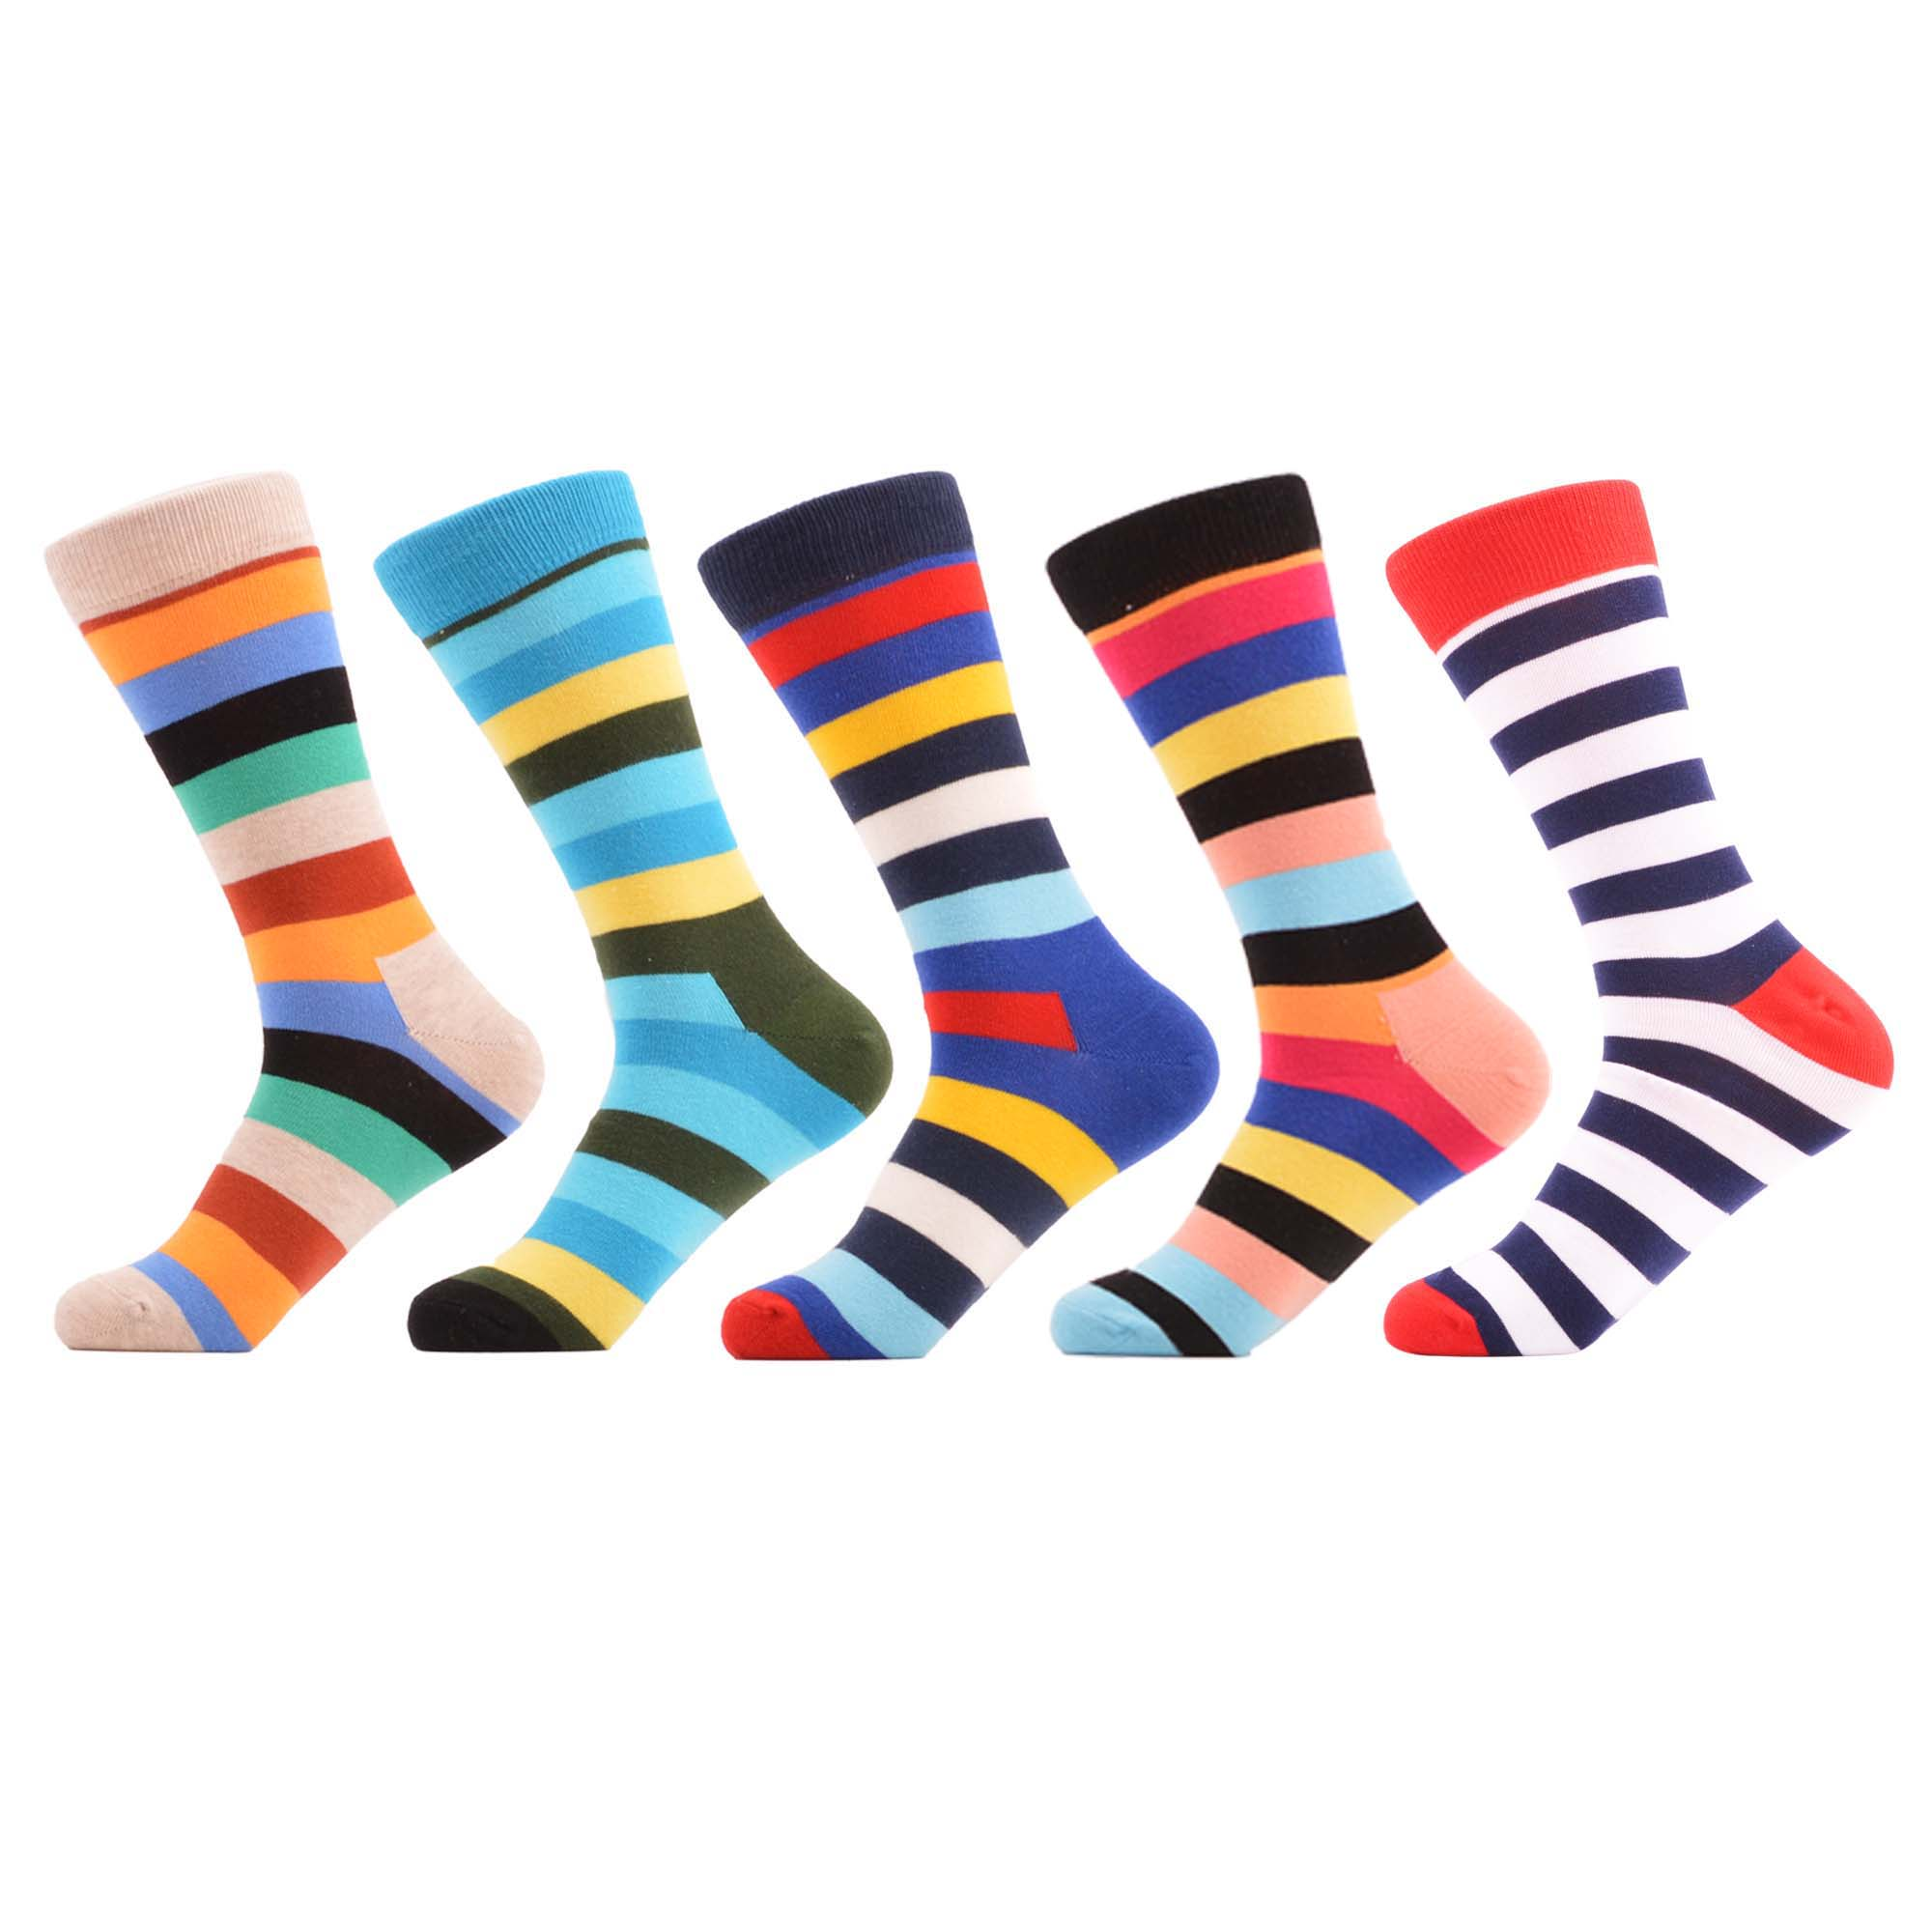 SANZETTI 5 Pairs/Lot Men Casual Colorful Happy Crew Socks Hip Hop Novelty Funny Combed Cotton Socks Dress Breathable Gift Socks